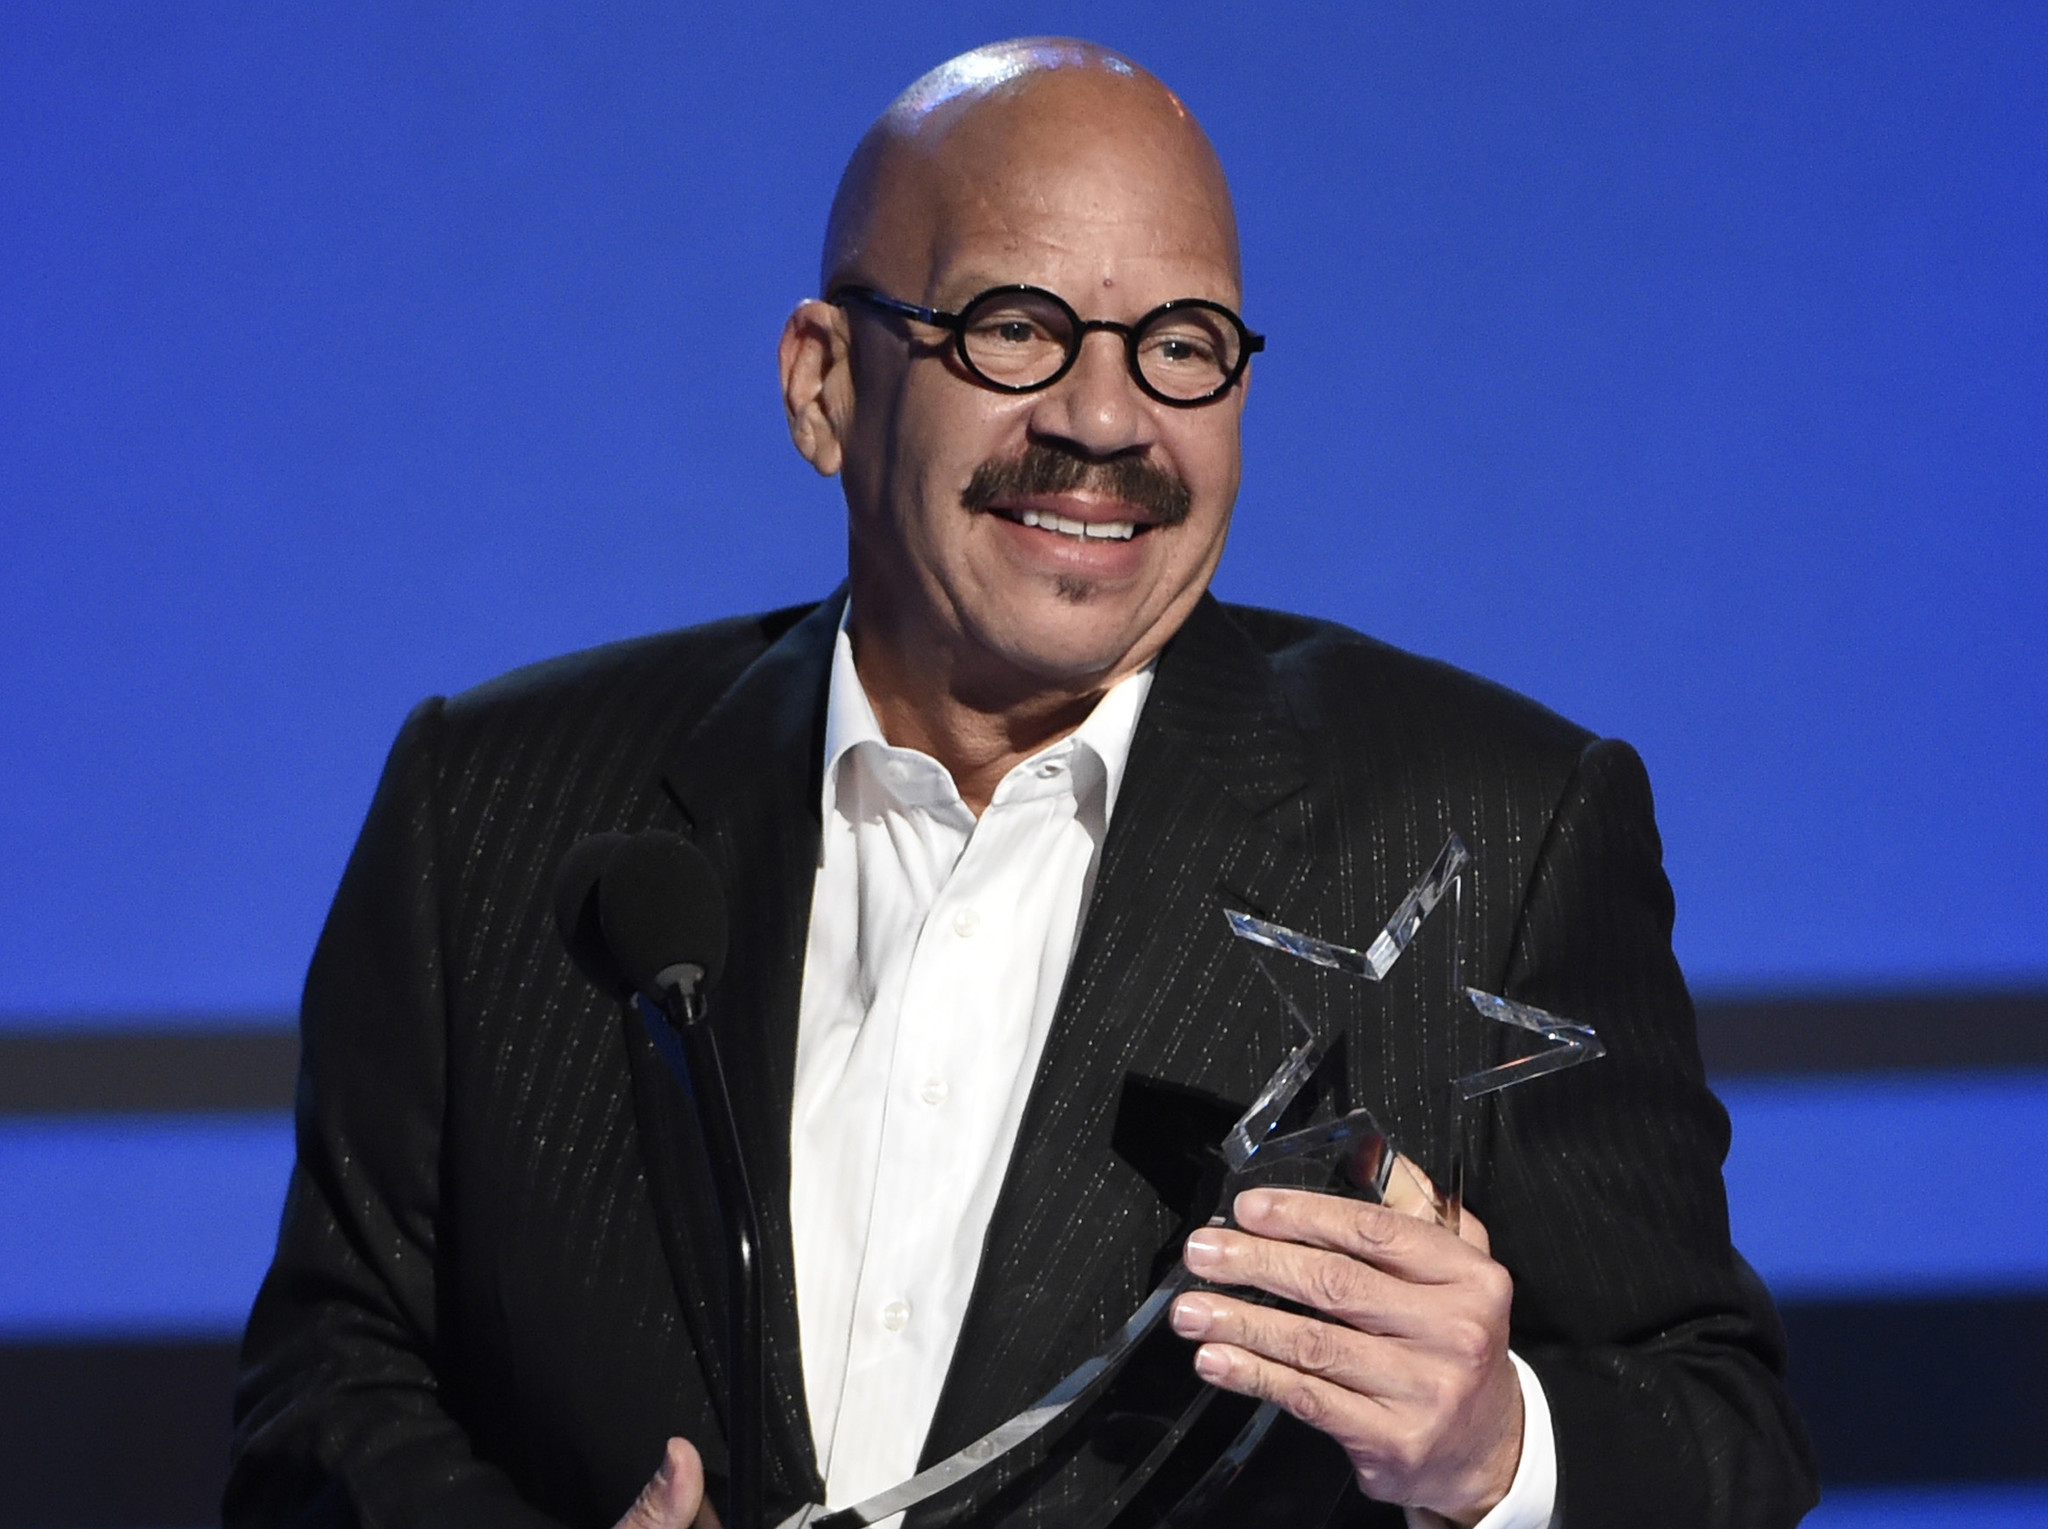 Tom Joyner signs off after nearly 50 years on radio airwaves